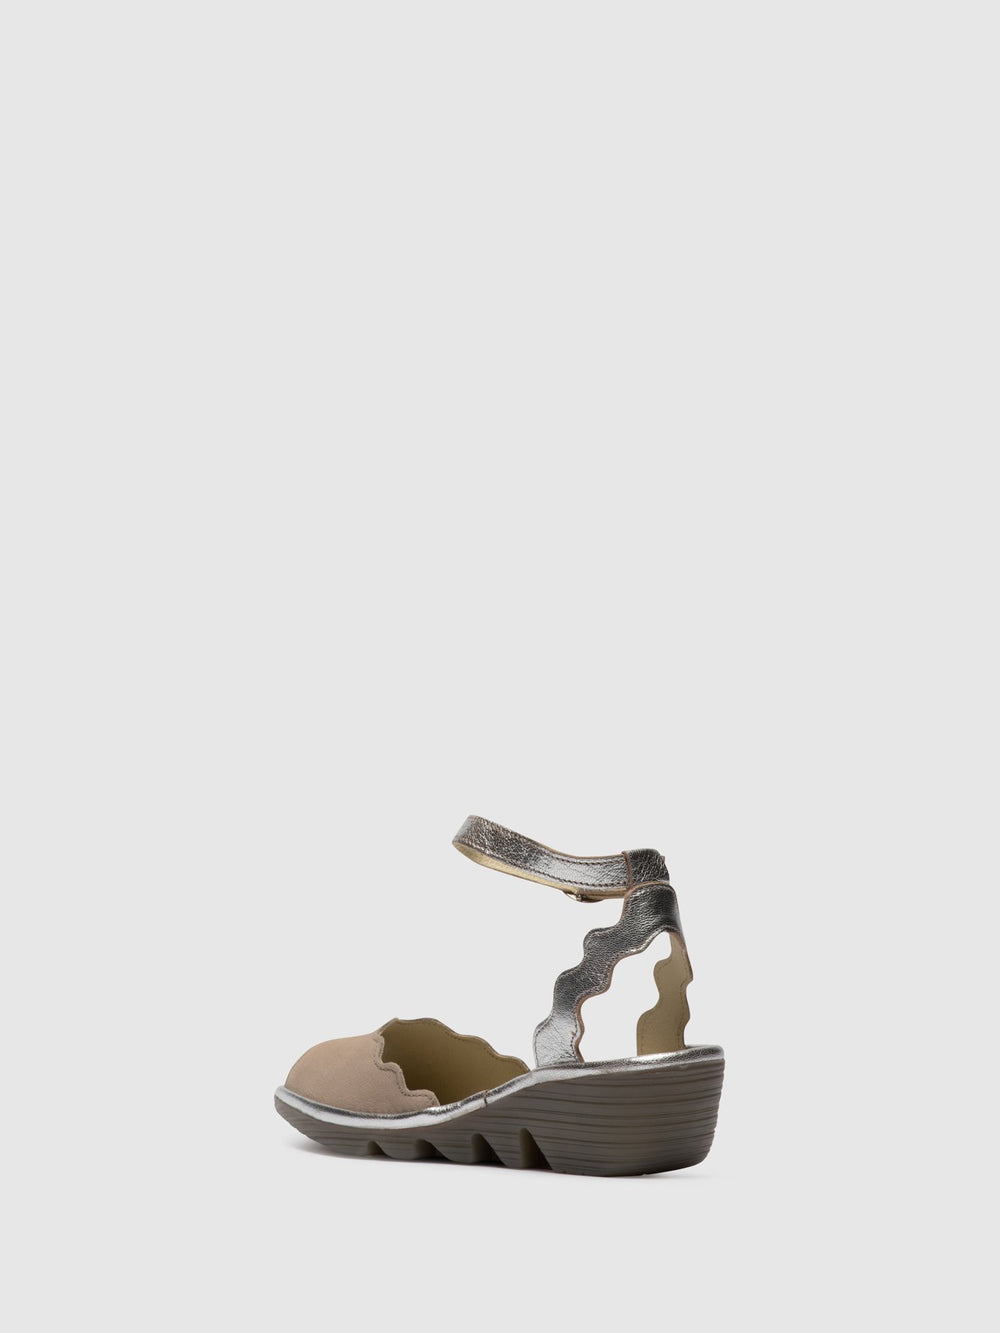 Ankle Strap Sandals PINE192FLY CONCRETE/SILVER